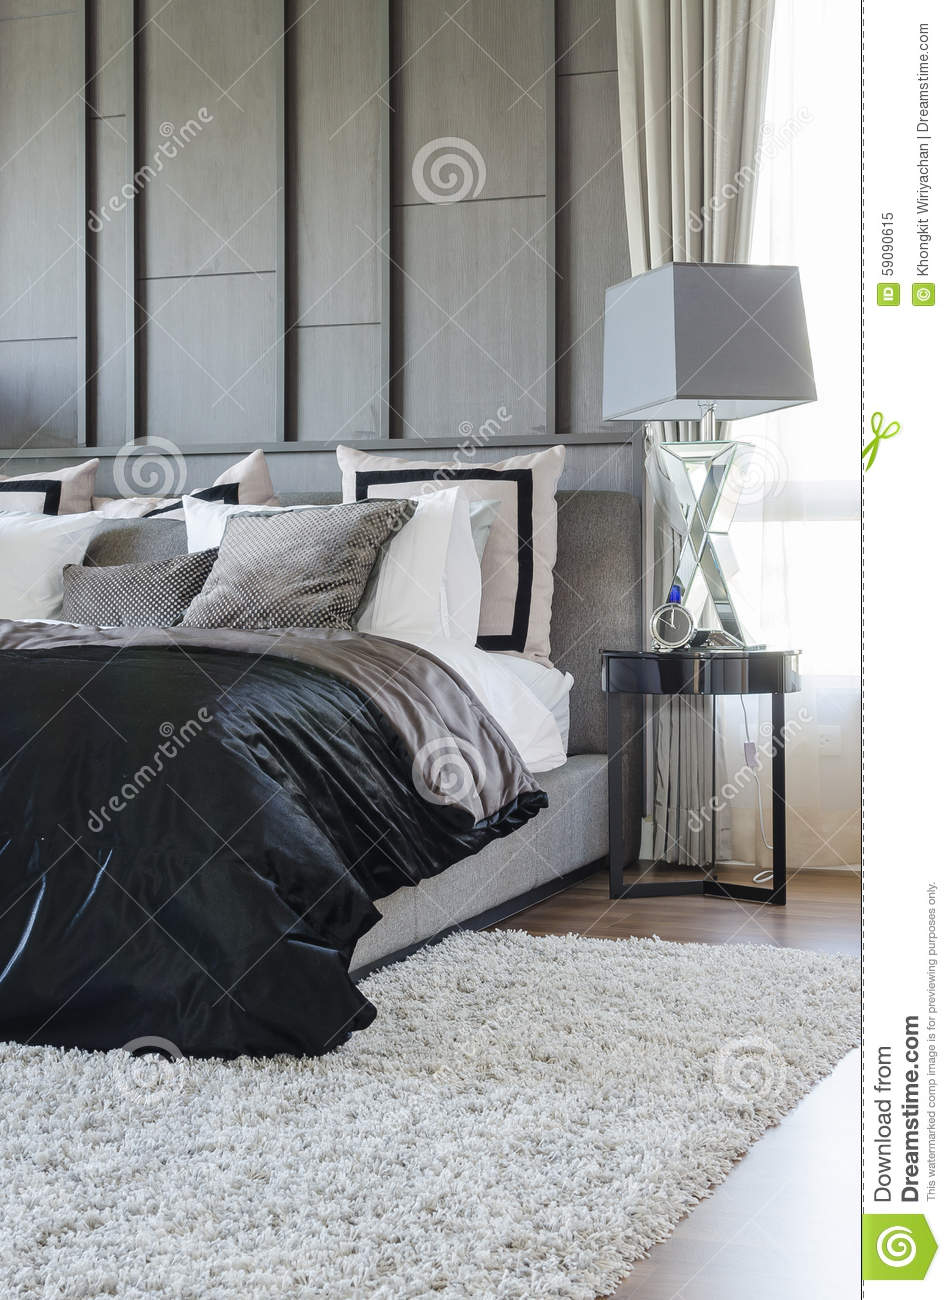 chambre a coucher moderne noir et blanc. Black Bedroom Furniture Sets. Home Design Ideas